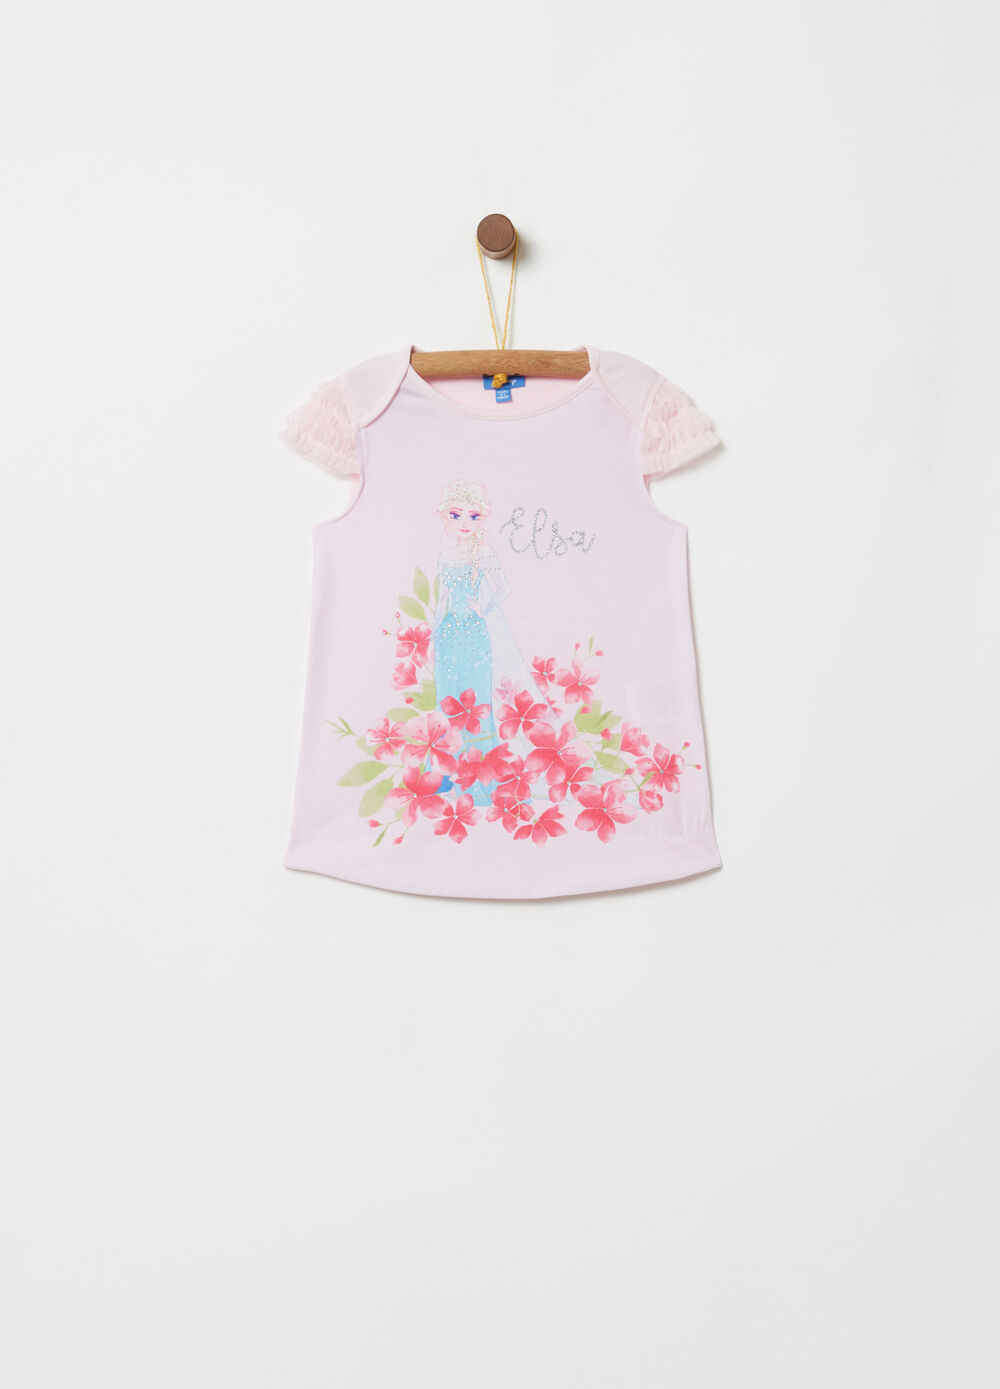 T-shirt with sleeves in tulle with Disney print